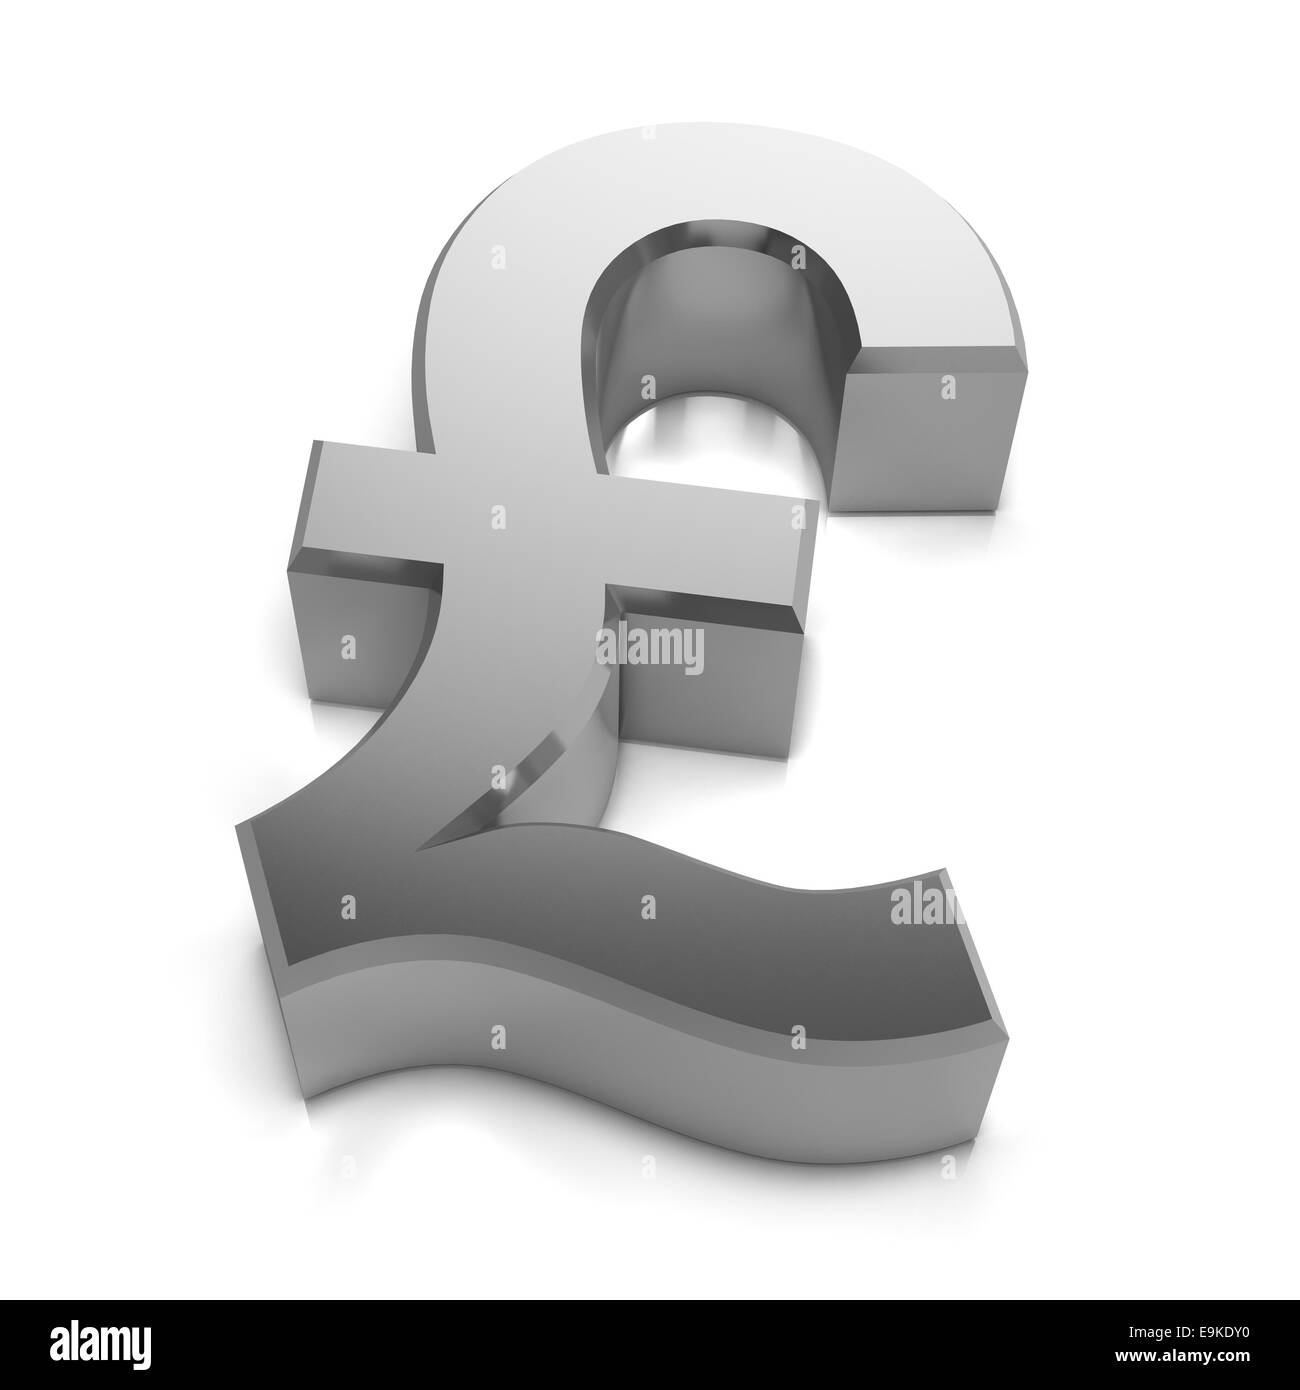 3d render of a silver uk pounds sterling currency symbol stock photo 3d render of a silver uk pounds sterling currency symbol biocorpaavc Gallery